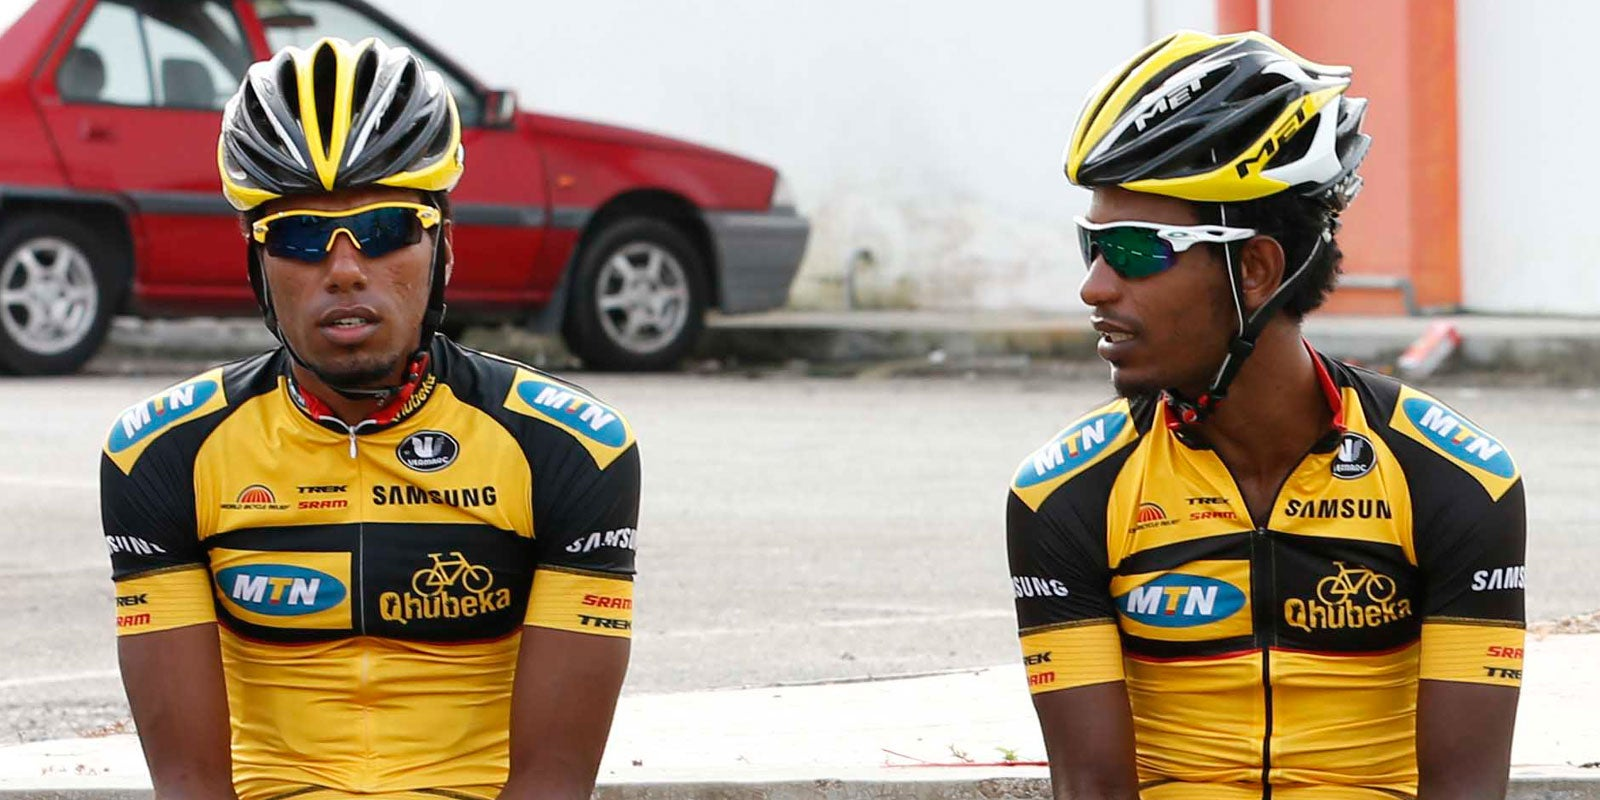 African Riders Make History at Tour de France 2162a0cbc